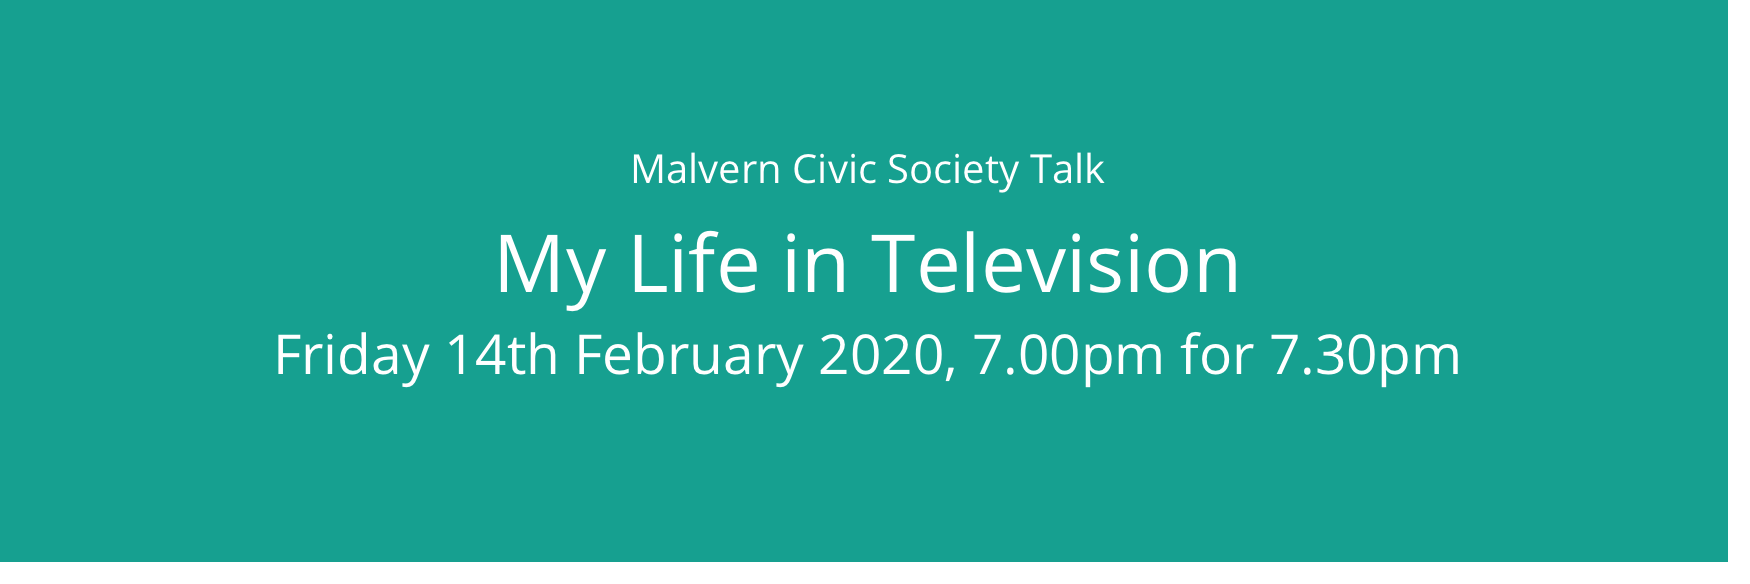 Talk: My Life in Television - 14th February 2020